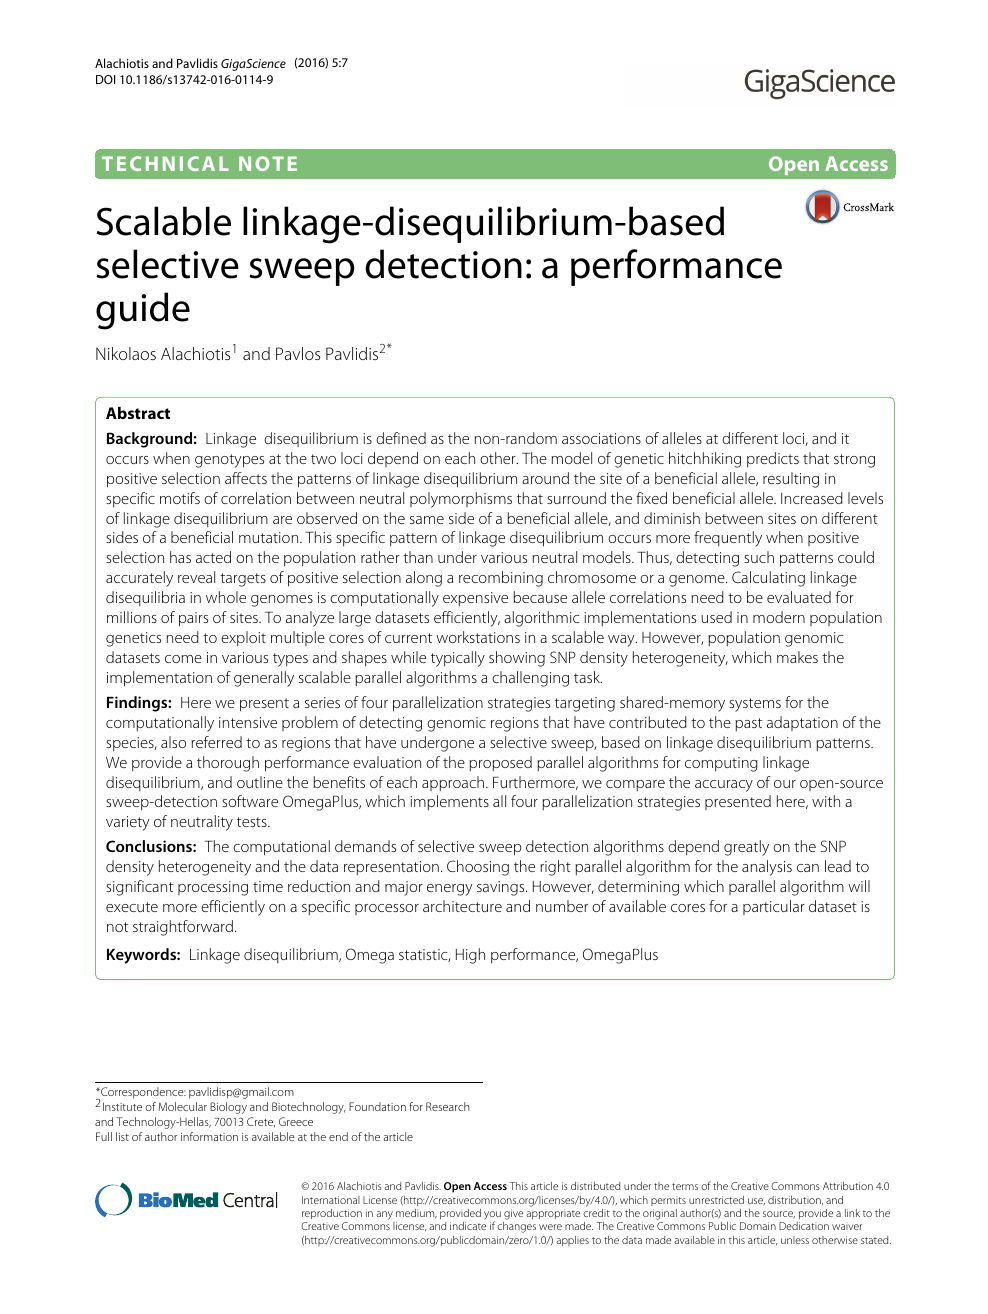 Scalable linkage-disequilibrium-based selective sweep